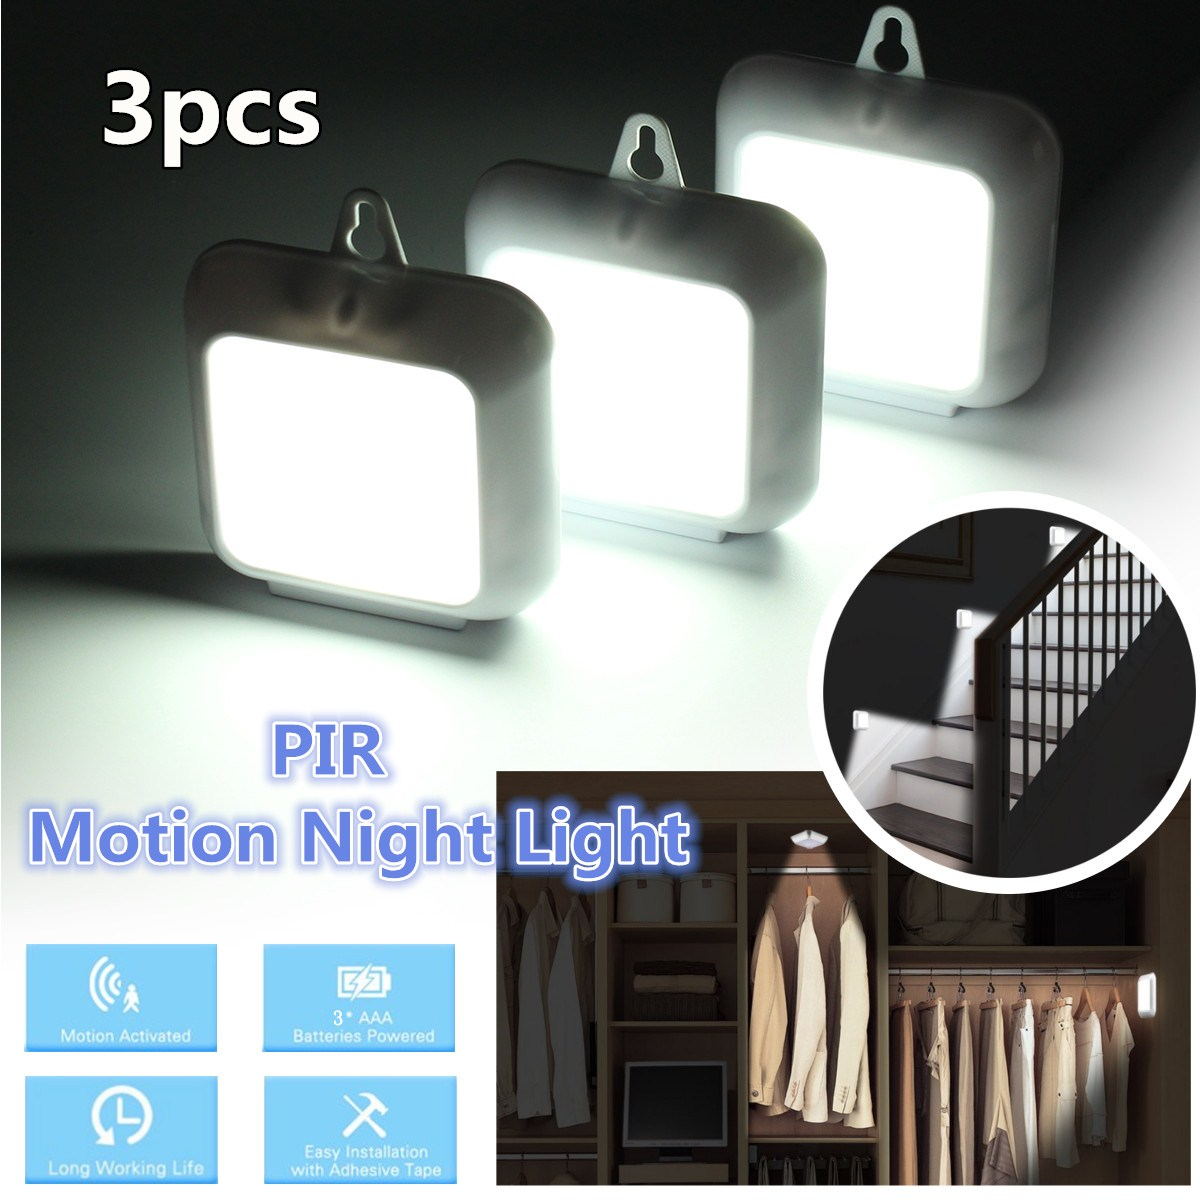 3 Pcs 6 LED Battery Powered PIR Motion Senser White Light Night Lamp for Cabinet Hallway Entrance